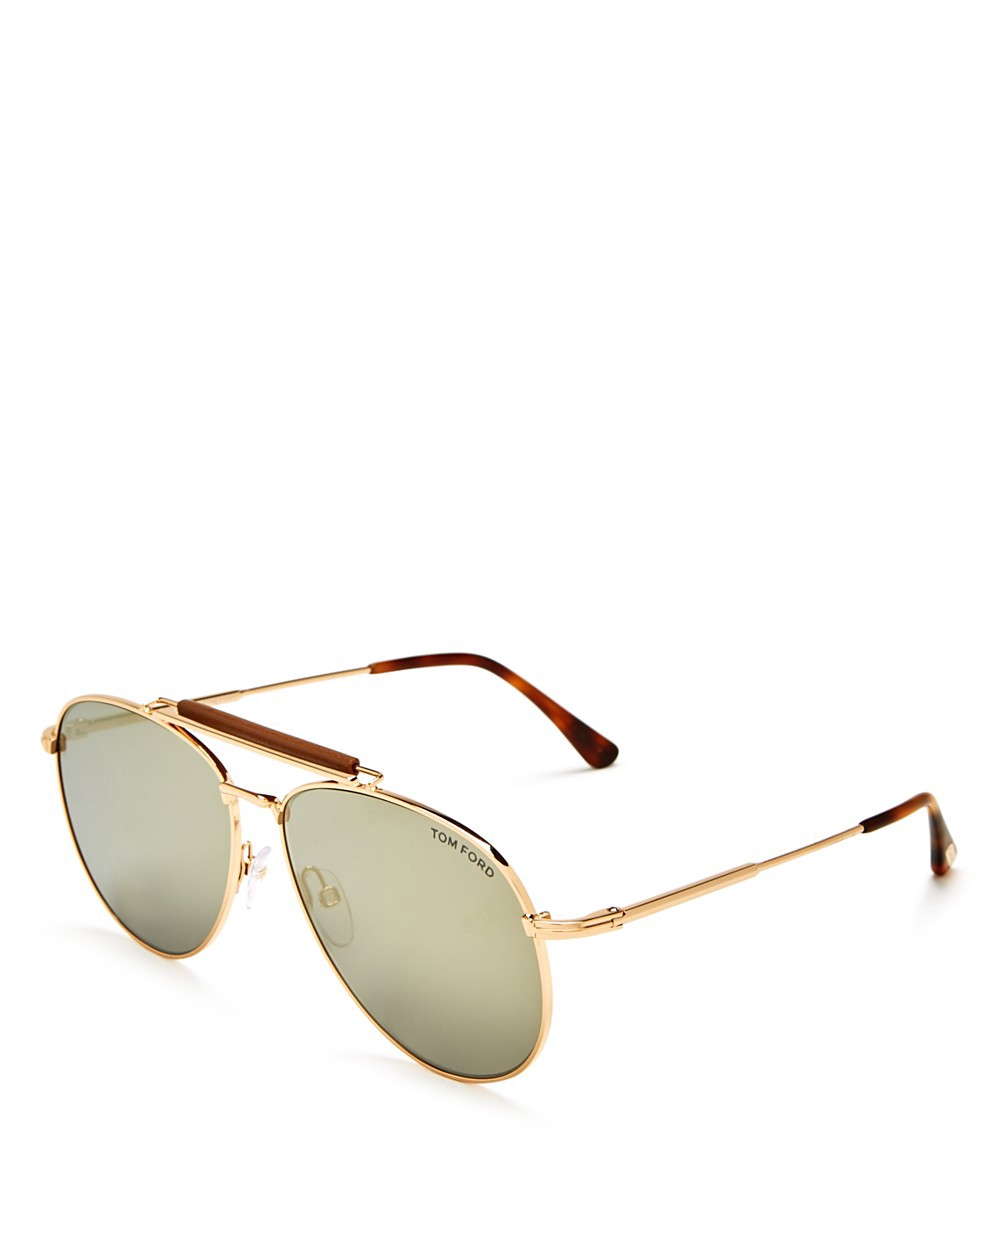 TOM FORD Mirrored Aviator Sunglasses, 62Mm in Brown/Gold Mirror